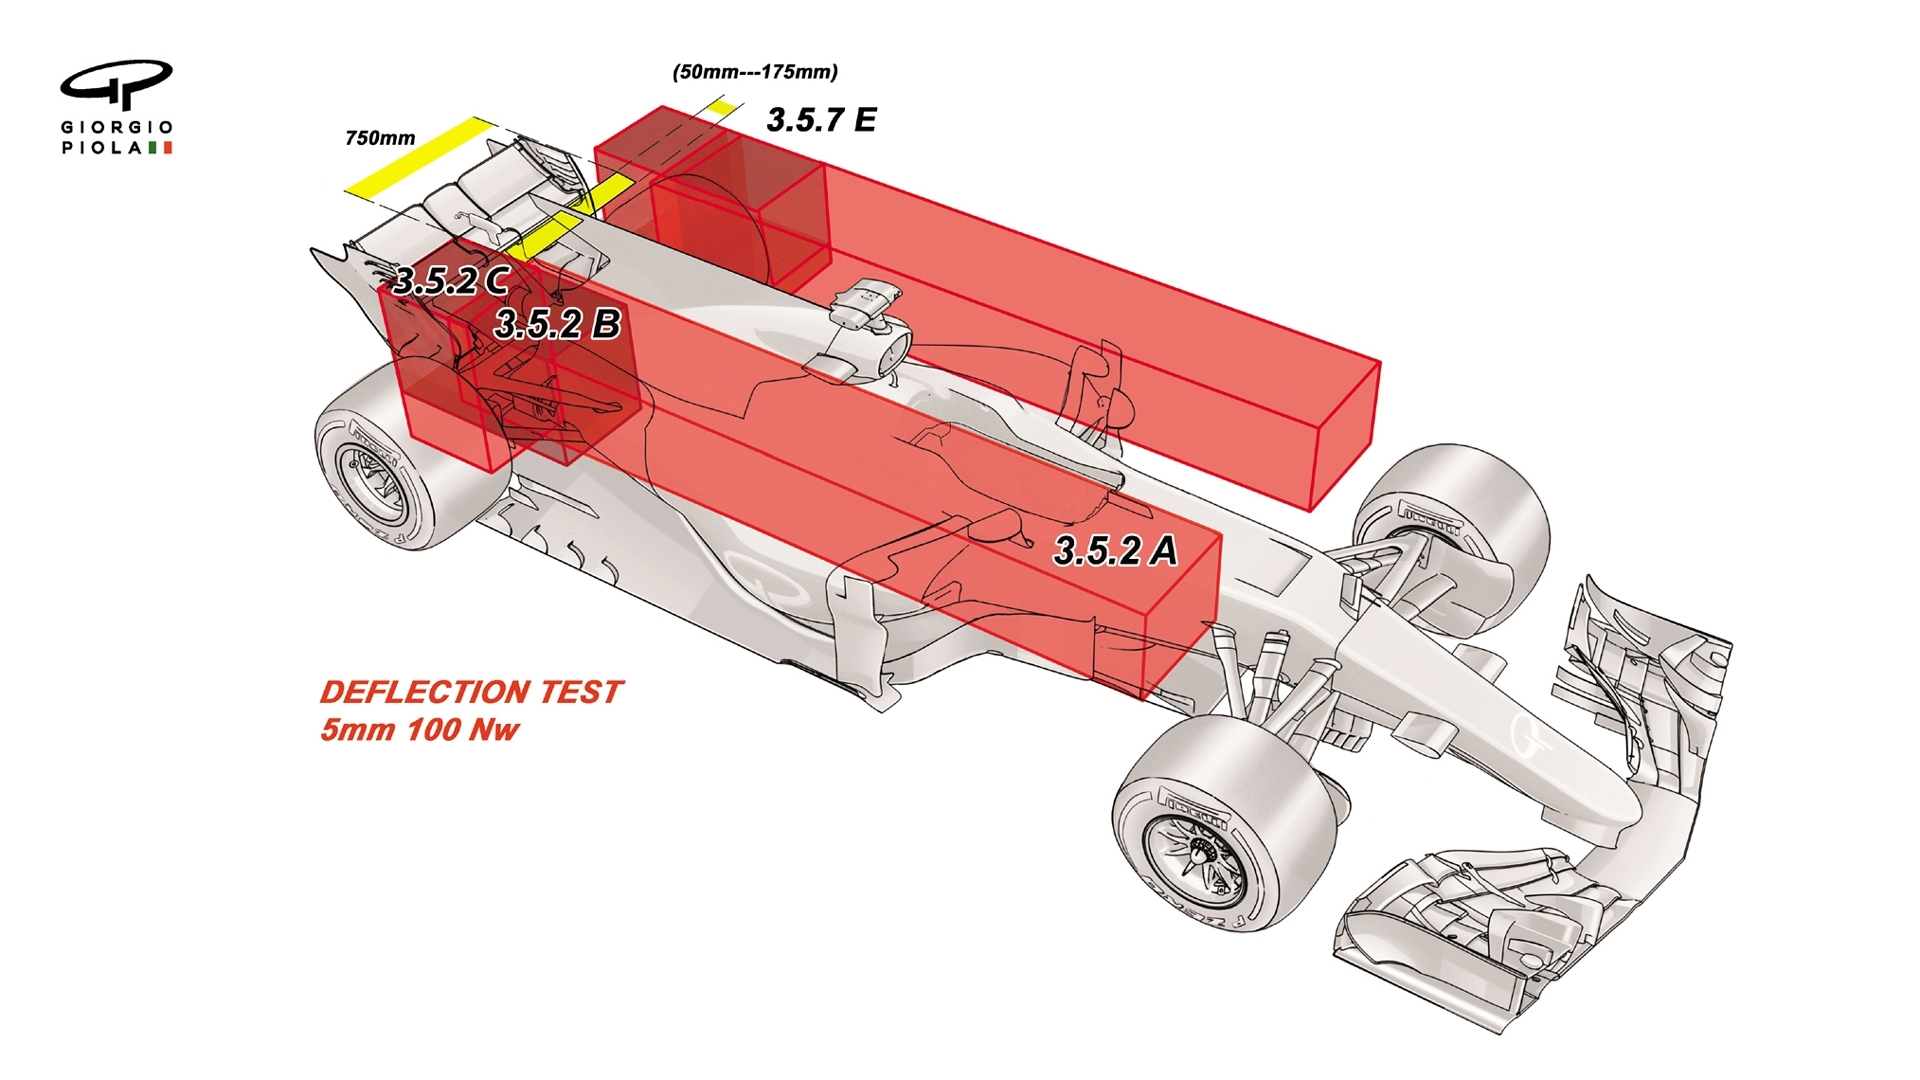 What Are The New F1 Technical Rules For 2018